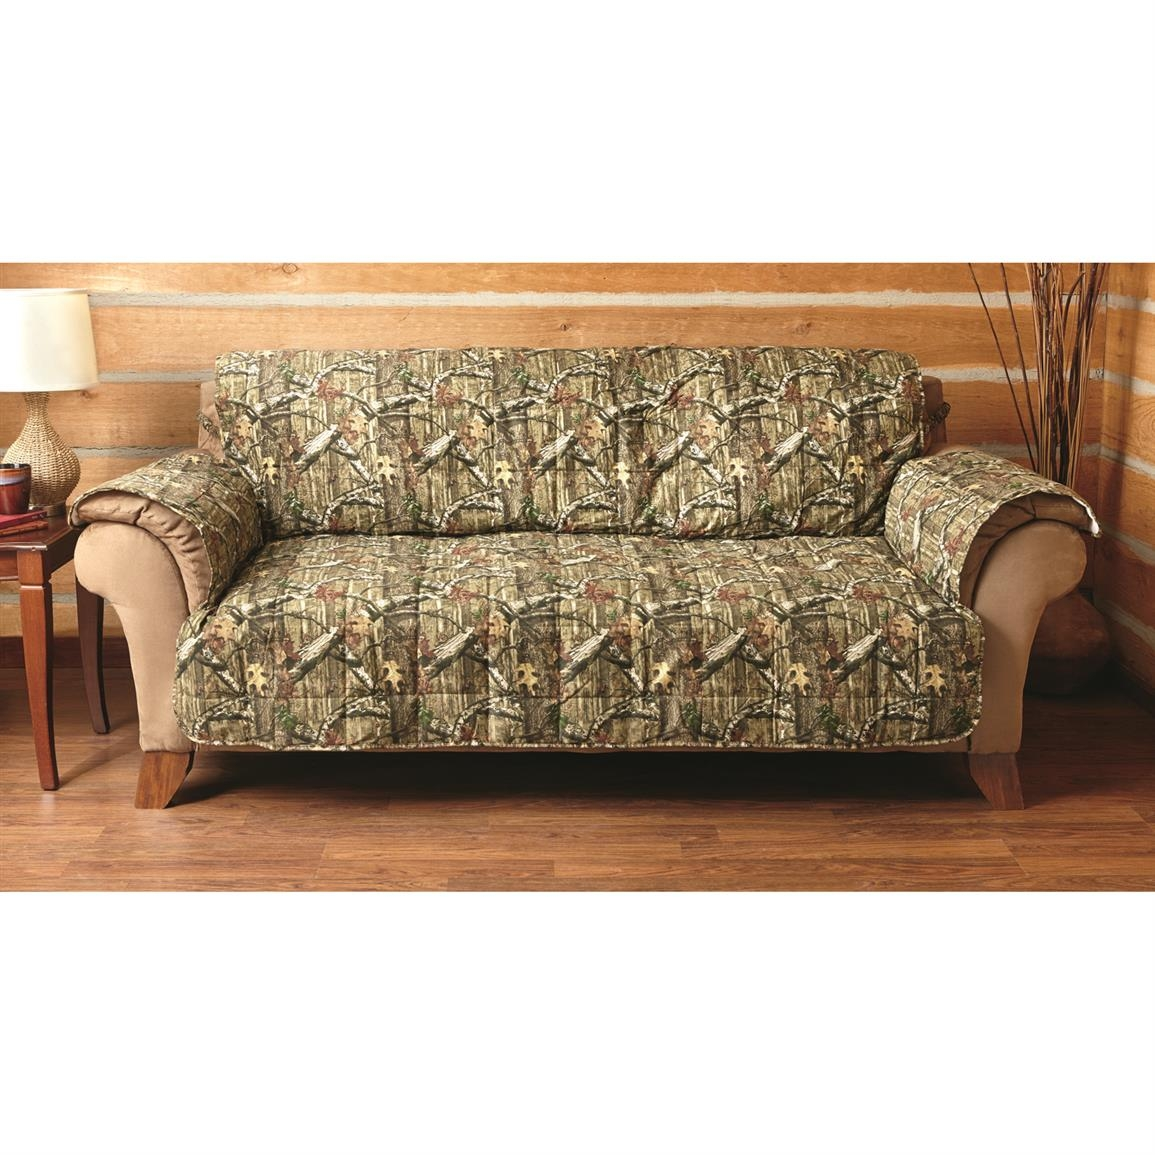 Mossy Oak Camo Furniture Covers 647980 Furniture Covers At Pertaining To Camo Sofa Cover (#12 of 12)